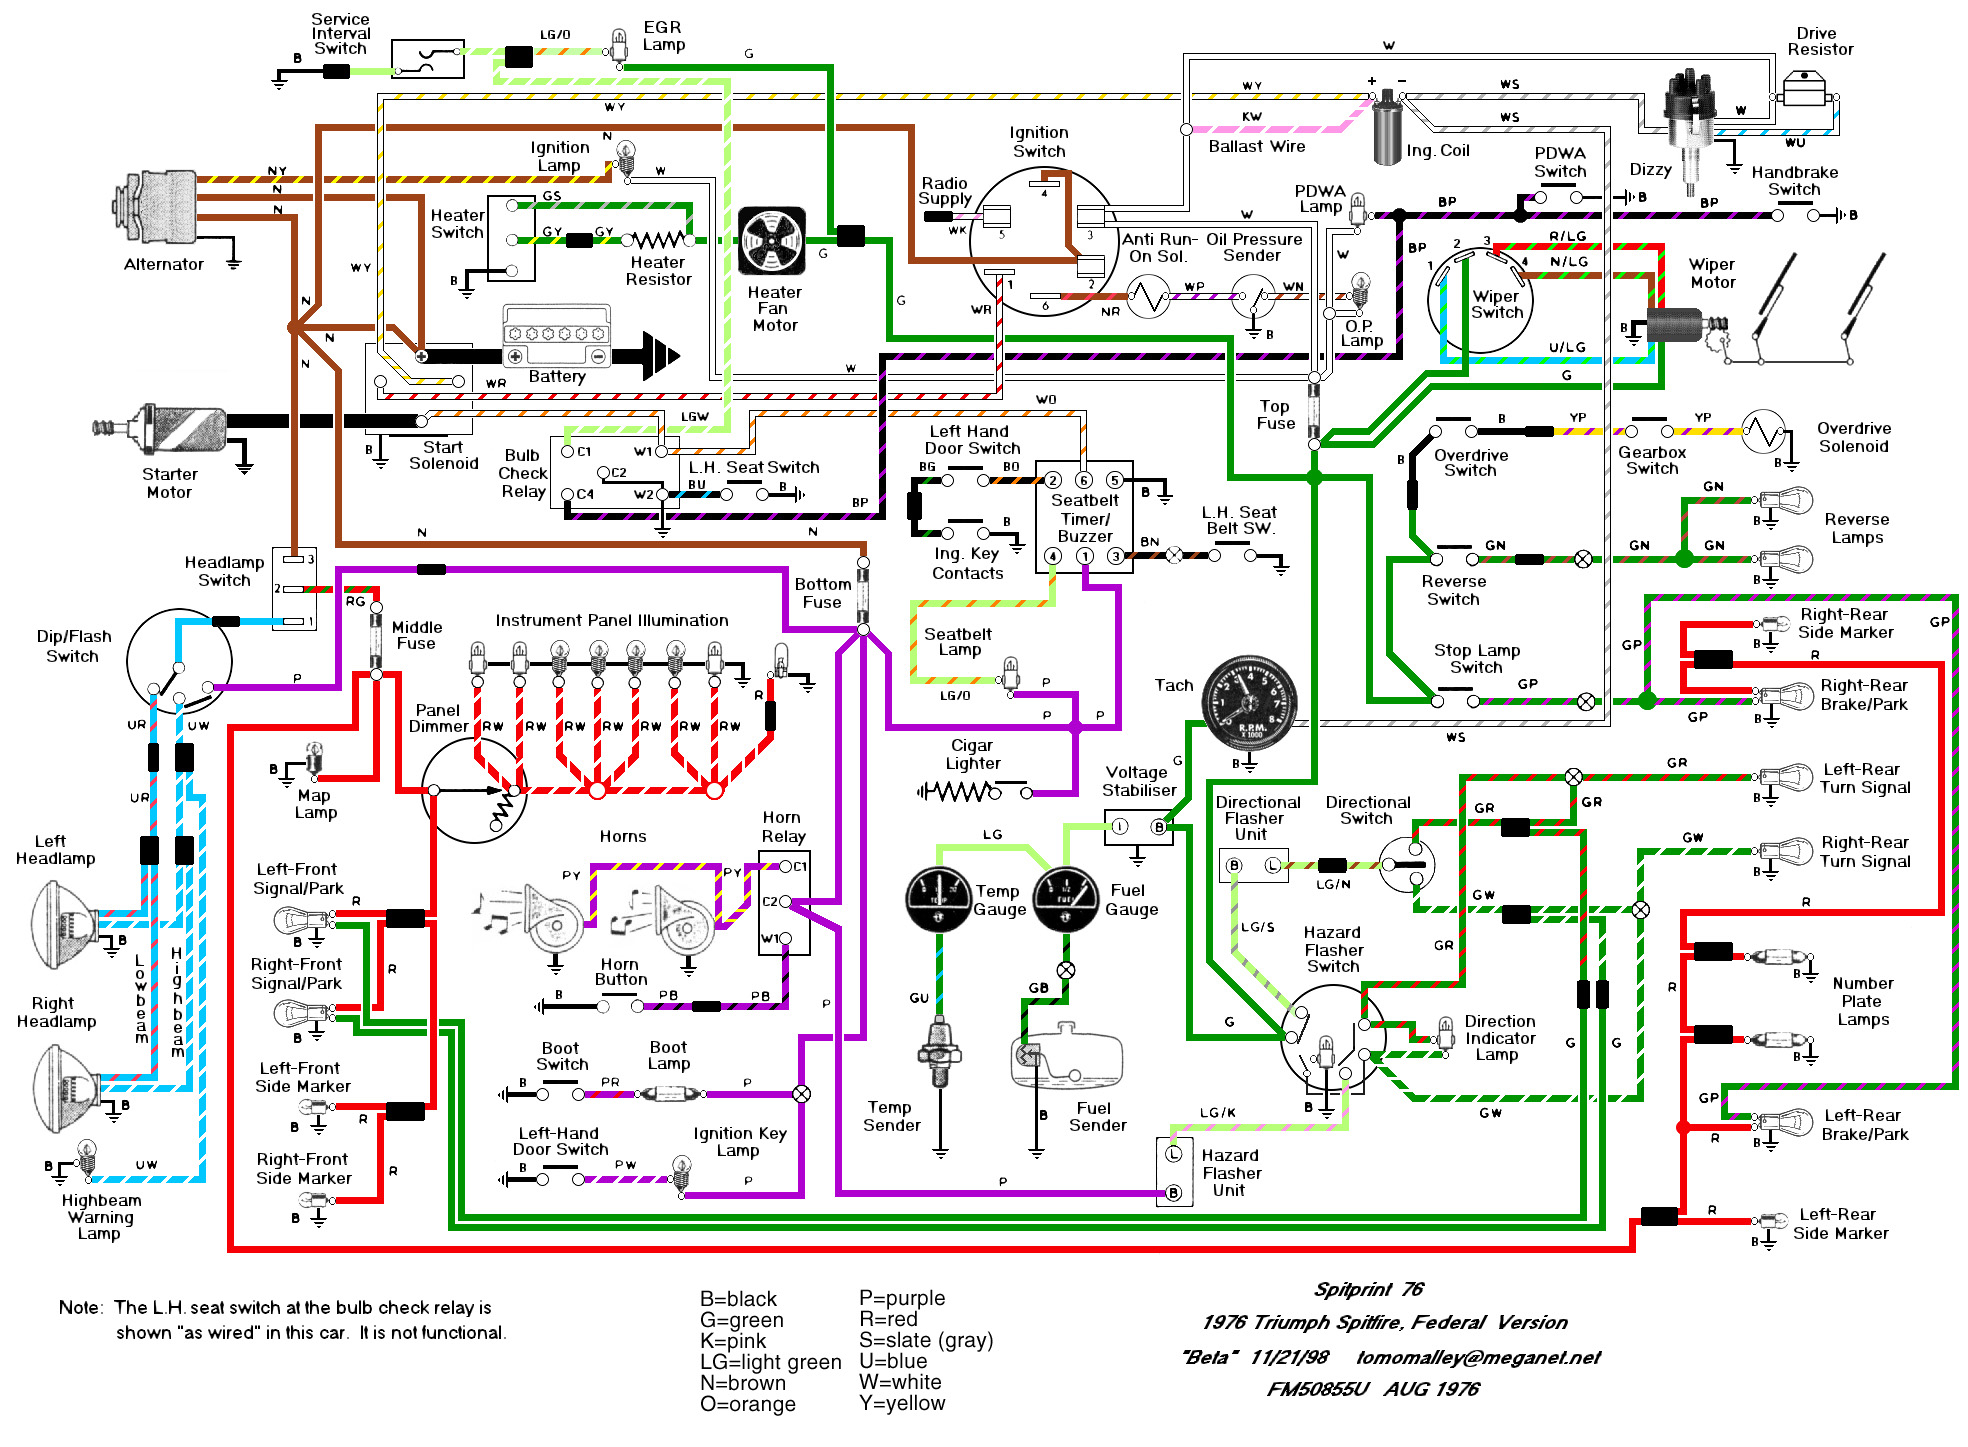 76diagram wiring schematics and diagrams triumph spitfire, gt6, herald vehicle wiring schematics at bayanpartner.co